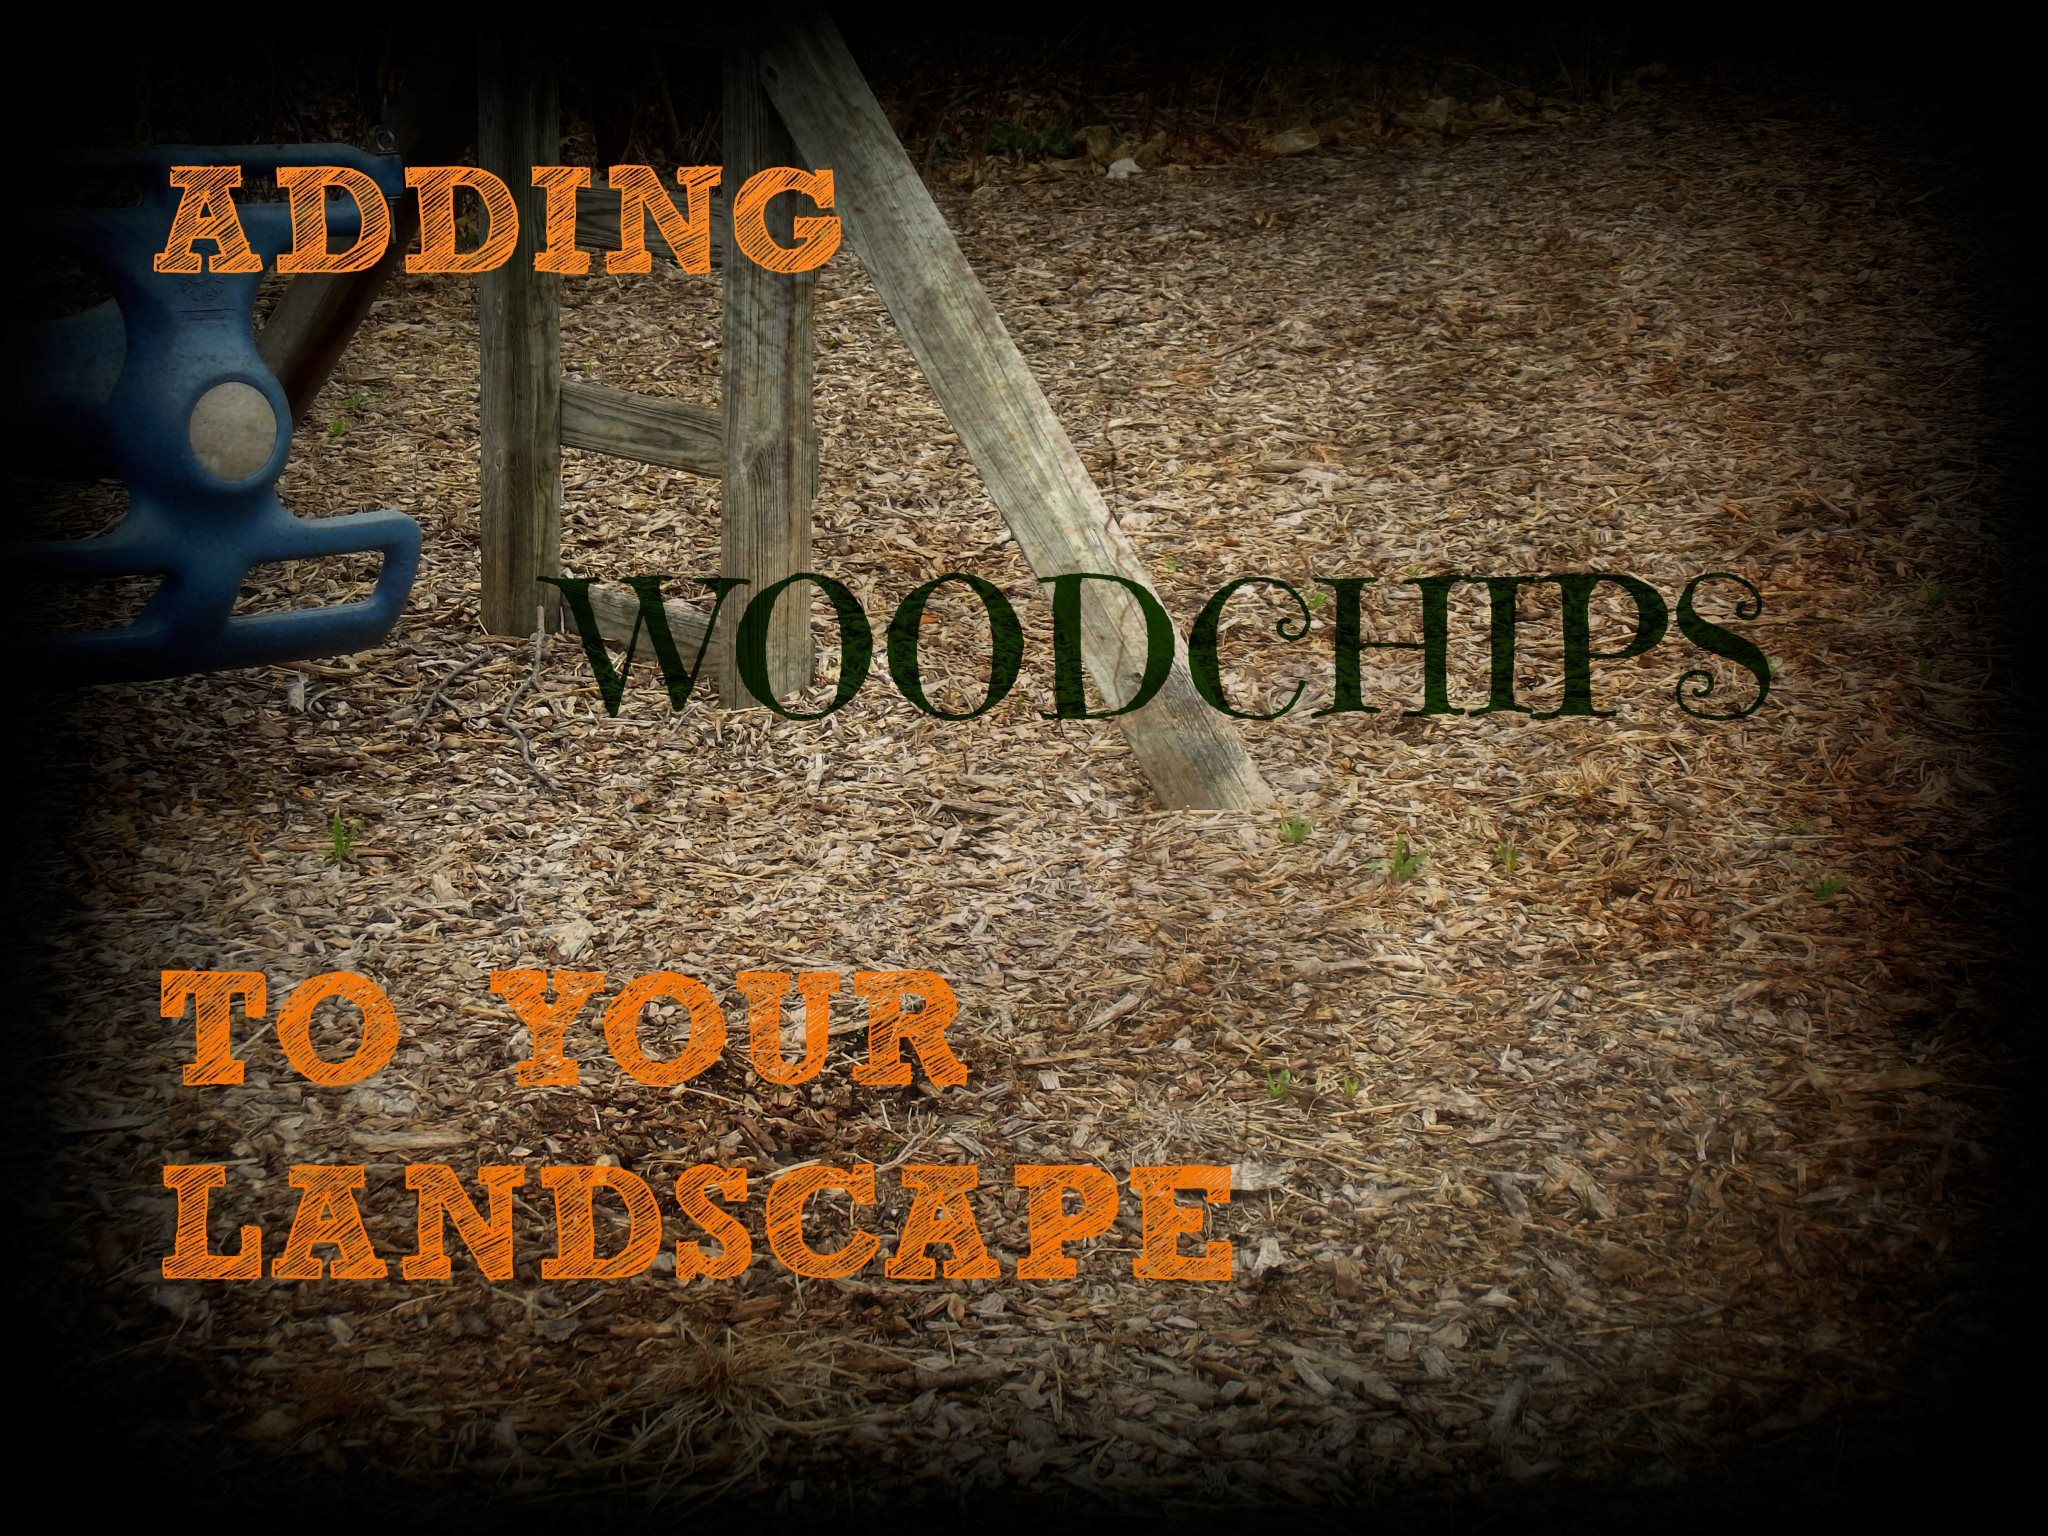 Adding Woodchips to your Landscape | Nelson Tree Service